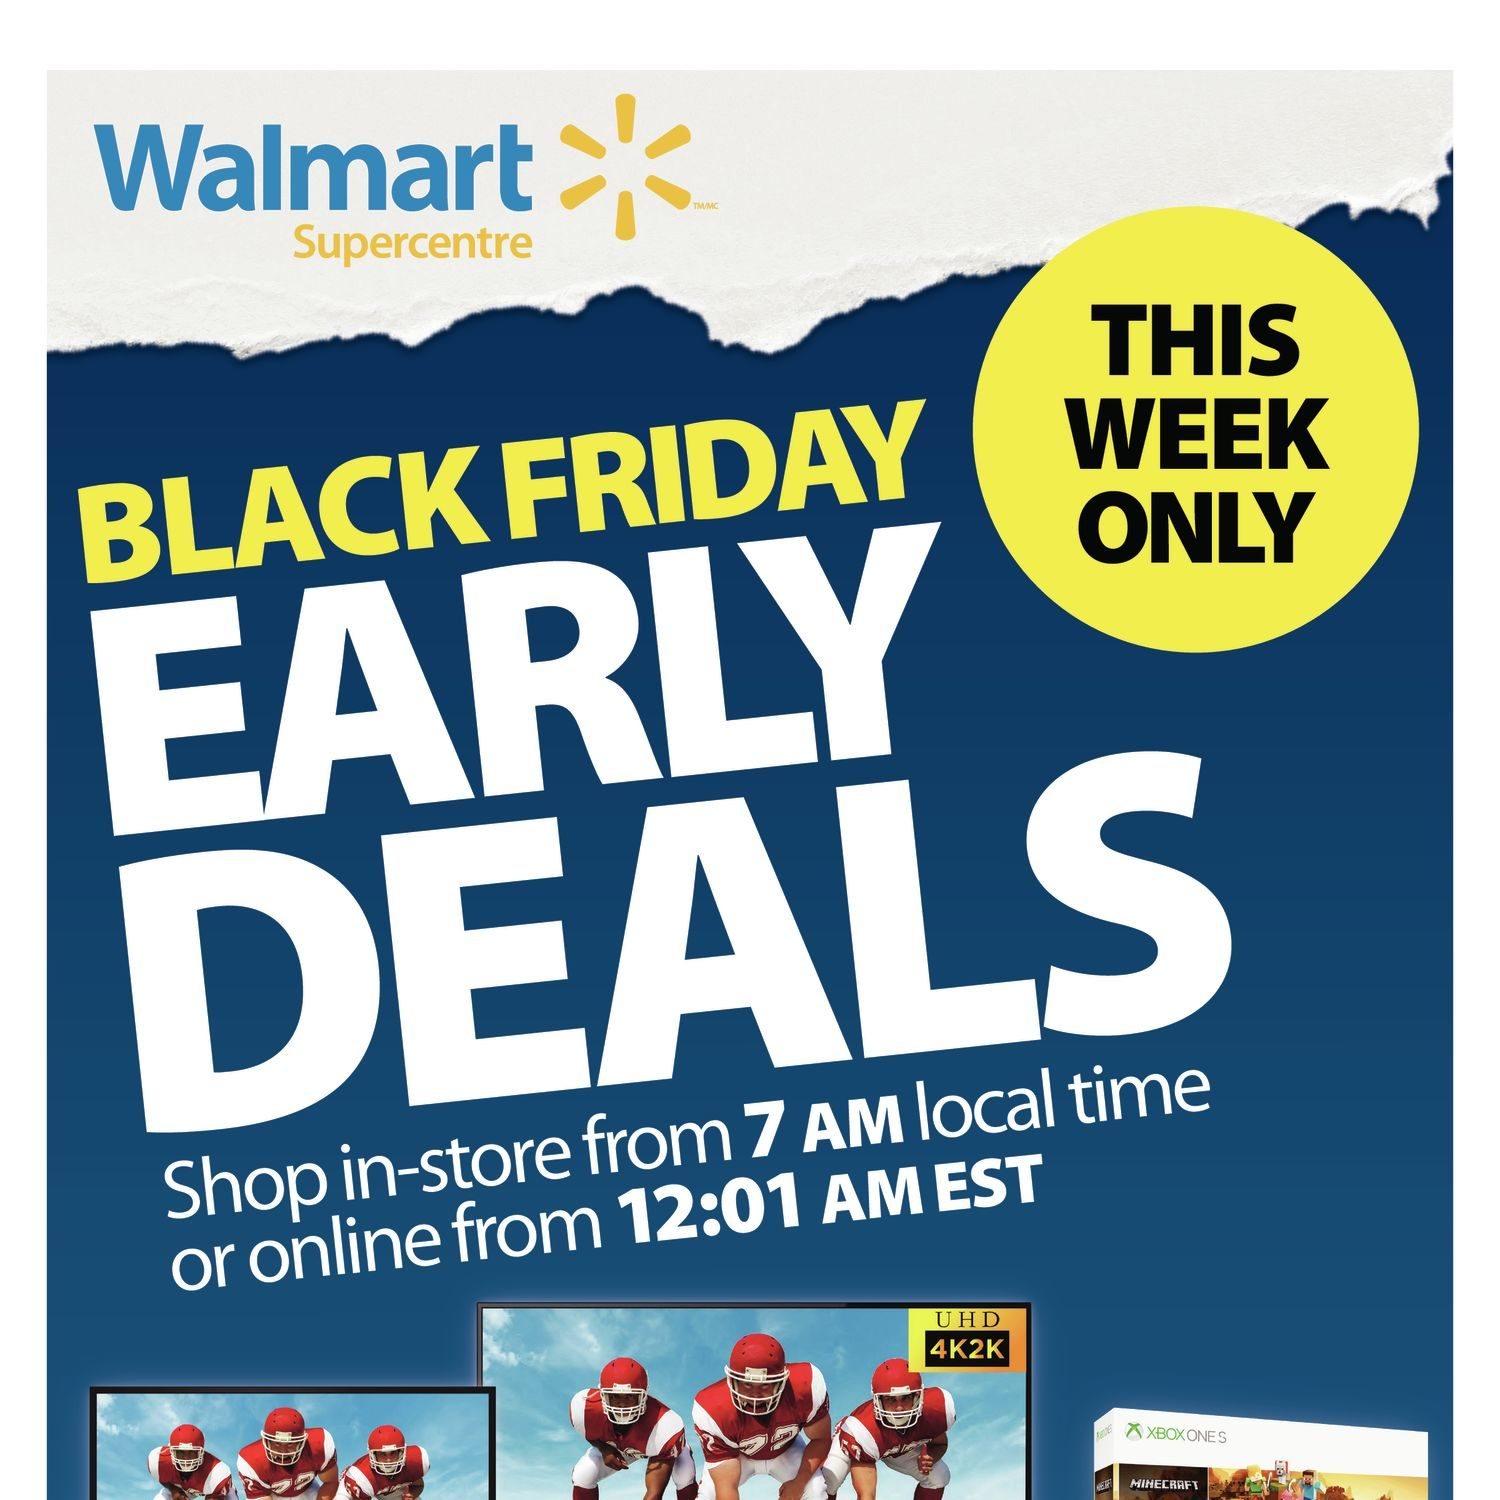 23624e7c7aa Walmart Weekly Flyer - Black Friday Early Deals - Nov 15 – 21 -  RedFlagDeals.com